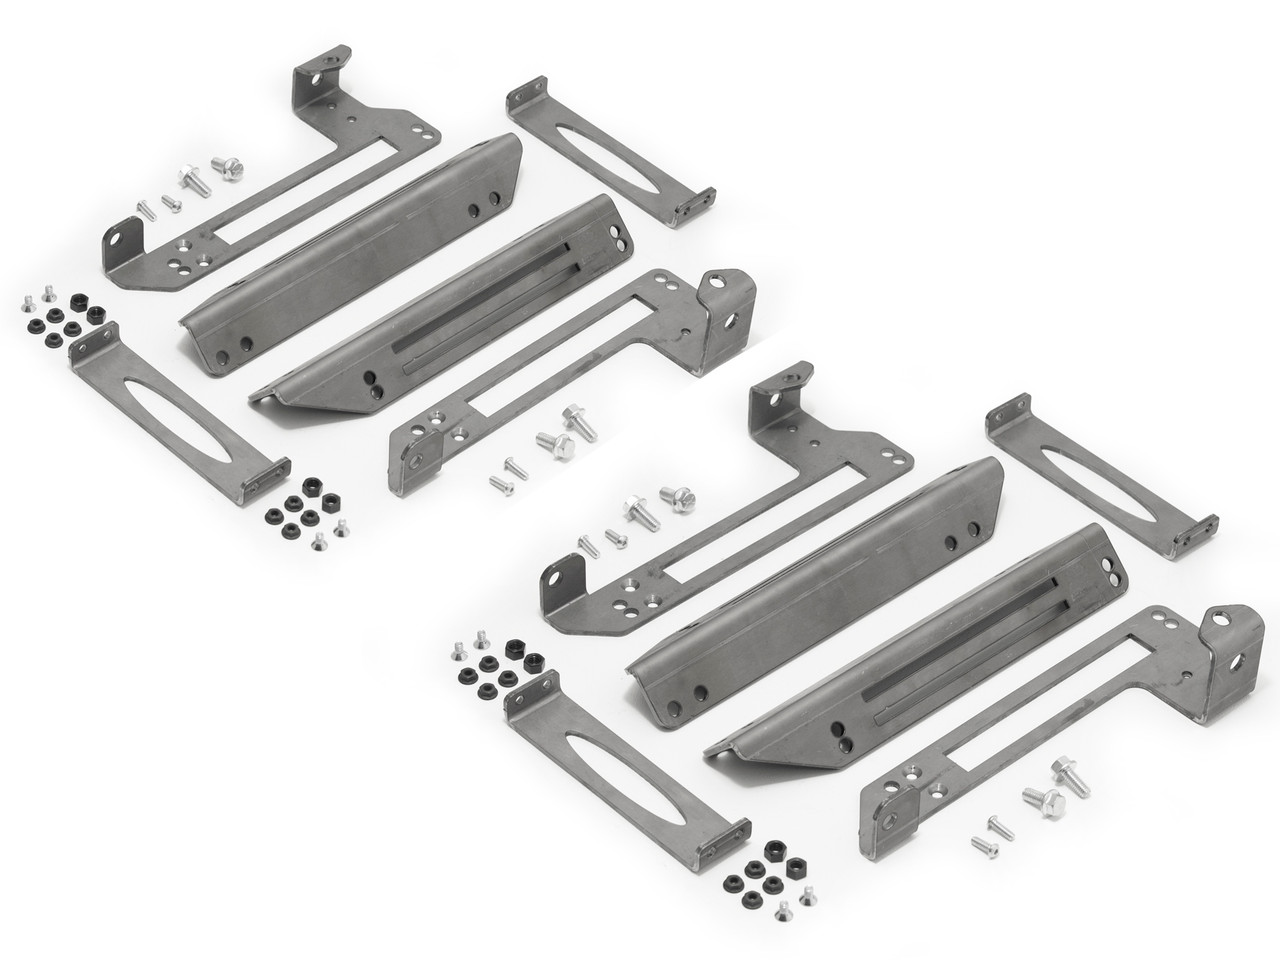 Adjustable Height & Angle Seat Mounts for the Jeep TJ or LJ